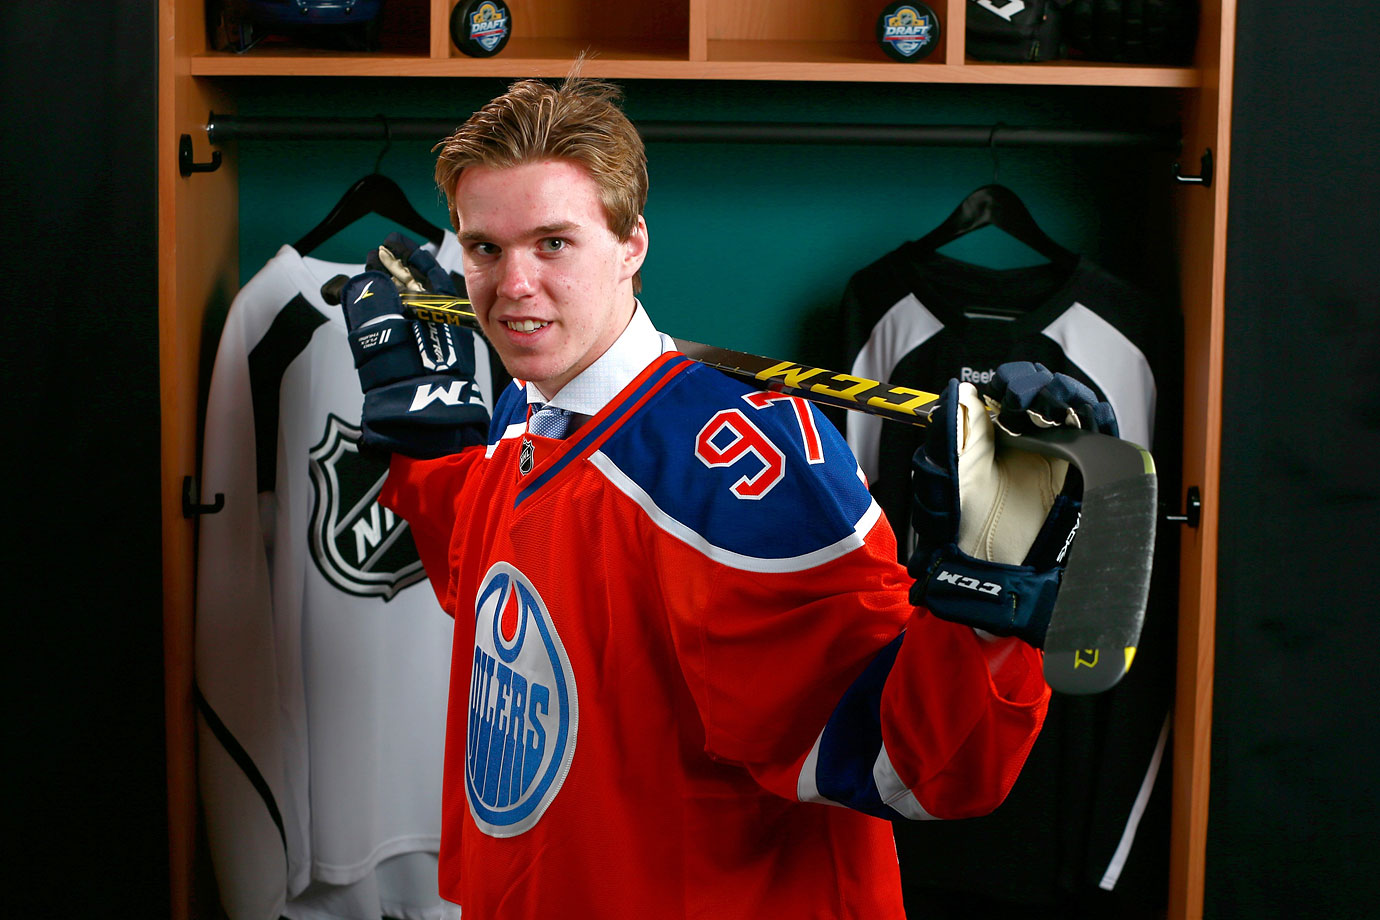 <p>No player has entered the league with such hype since Sidney Crosby a decade ago. Drafting first for the fourth time in the past six seasons, the Oilers added a generational talent in Connor McDavid. The dominant center scored 44 goals and 76 assists for 120 points in just 47 games with the Erie Otters in 2014-15, leading his team to the OHL finals while scoring 21 goals and 28 assists in just 19 playoff games. — Notable picks: No. 2: Jack Eichel, C, Buffalo Sabres | No. 3: Dylan Strome, C, Arizona Coyotes</p>